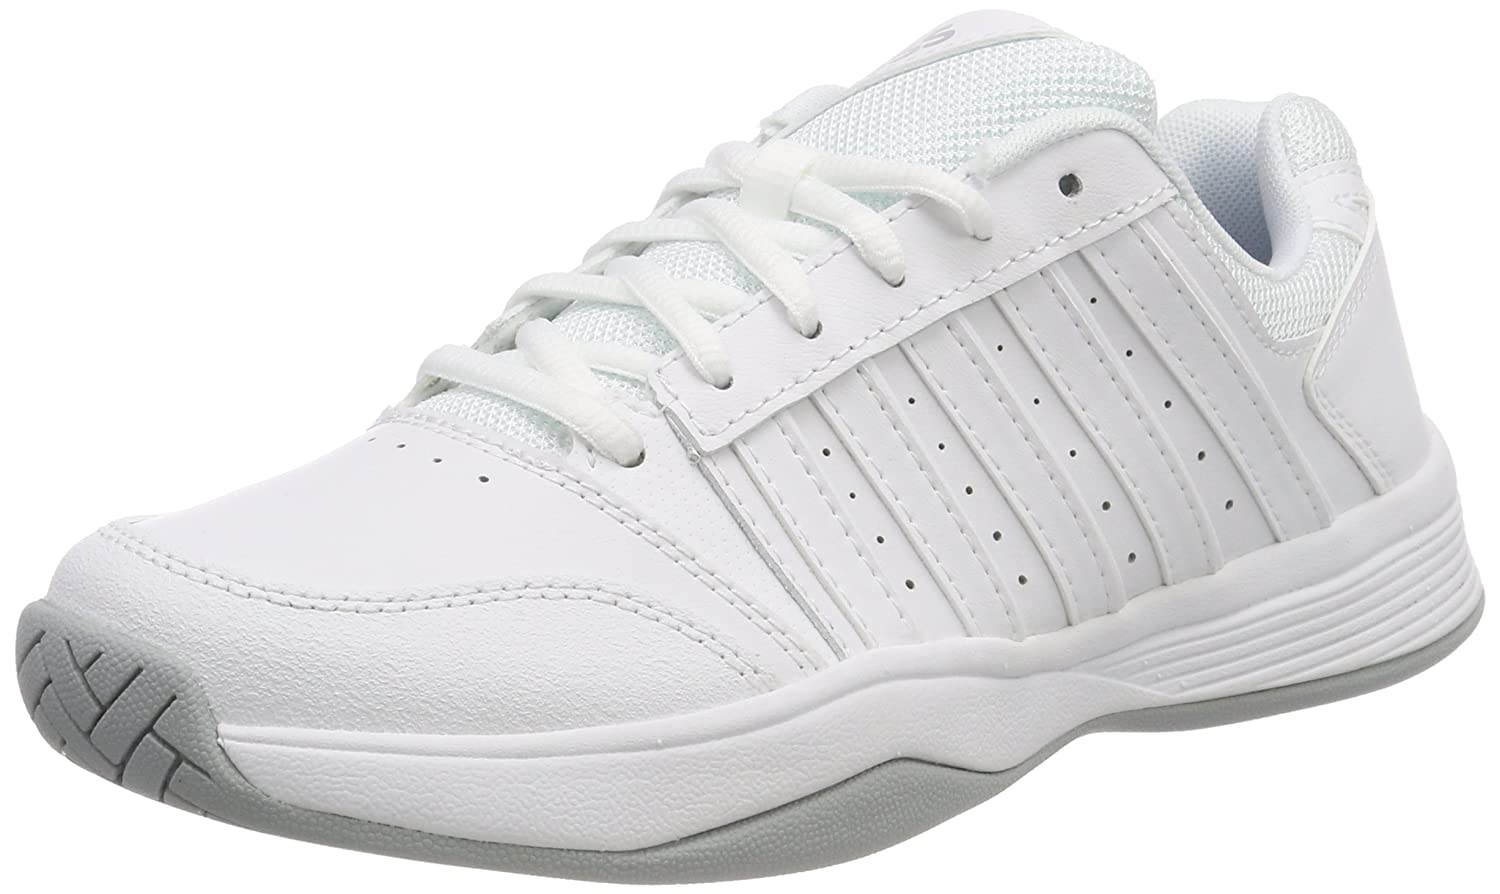 K-Swiss Women`s Court Smash Tennis Shoes White and Highrise-() B079SWWSNT 7 B(M) US|White/White/Highrise